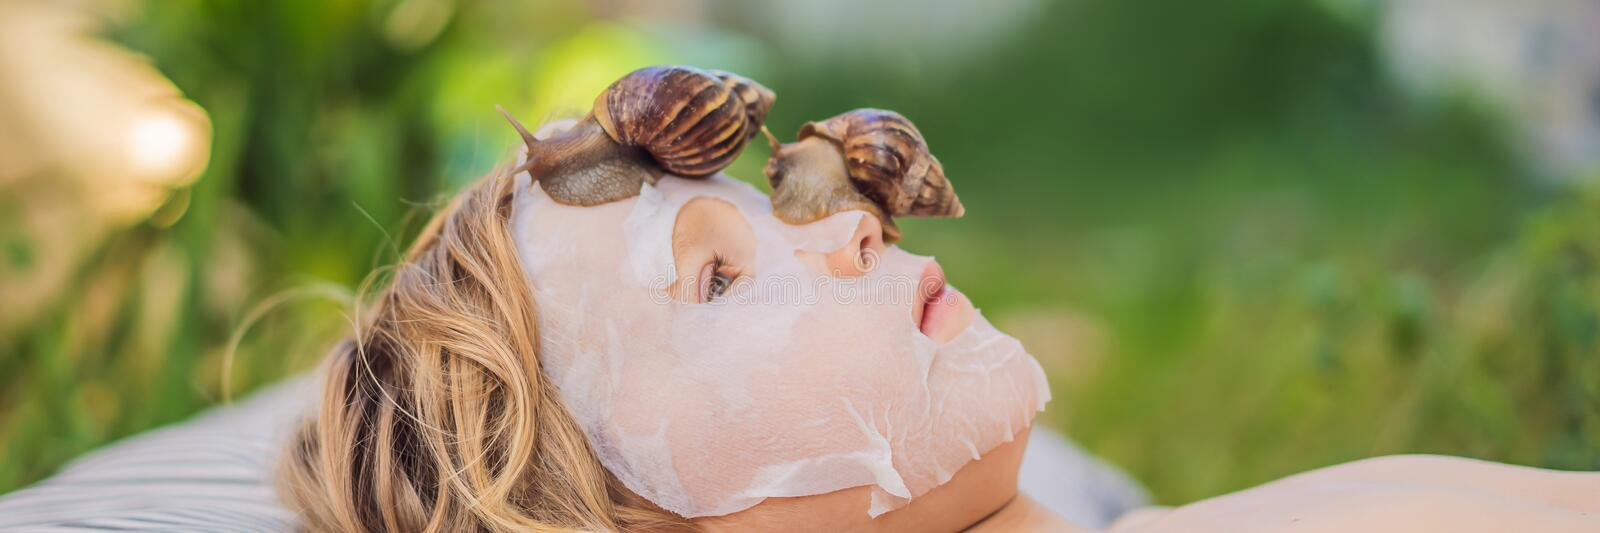 Strongly younger from the mask with snail mucus. A child in a mask for the face with a snail. Snail crawling on a face. Mask. SPA for all. BANNER, LONG FORMAT royalty free stock image